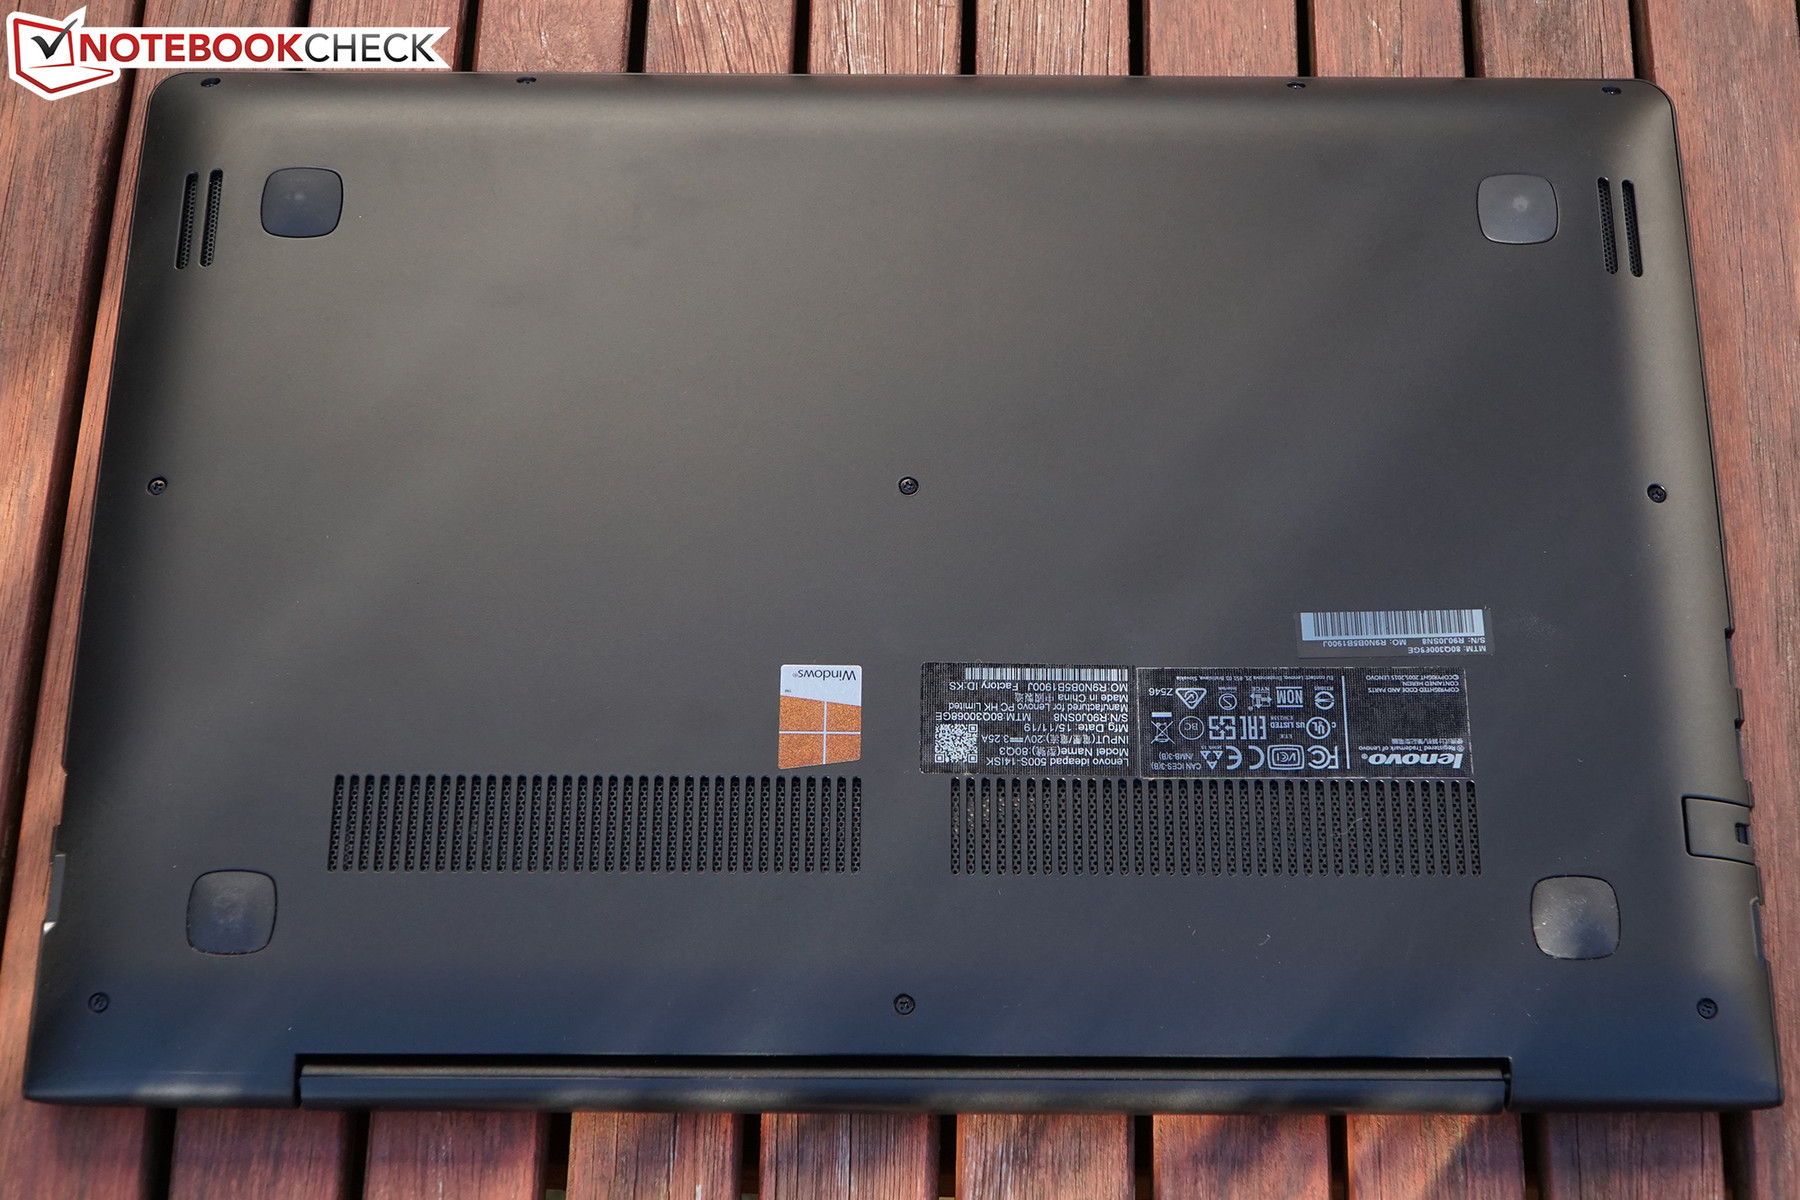 Lenovo IdeaPad 500S-14ISK Realtek Bluetooth Windows 8 X64